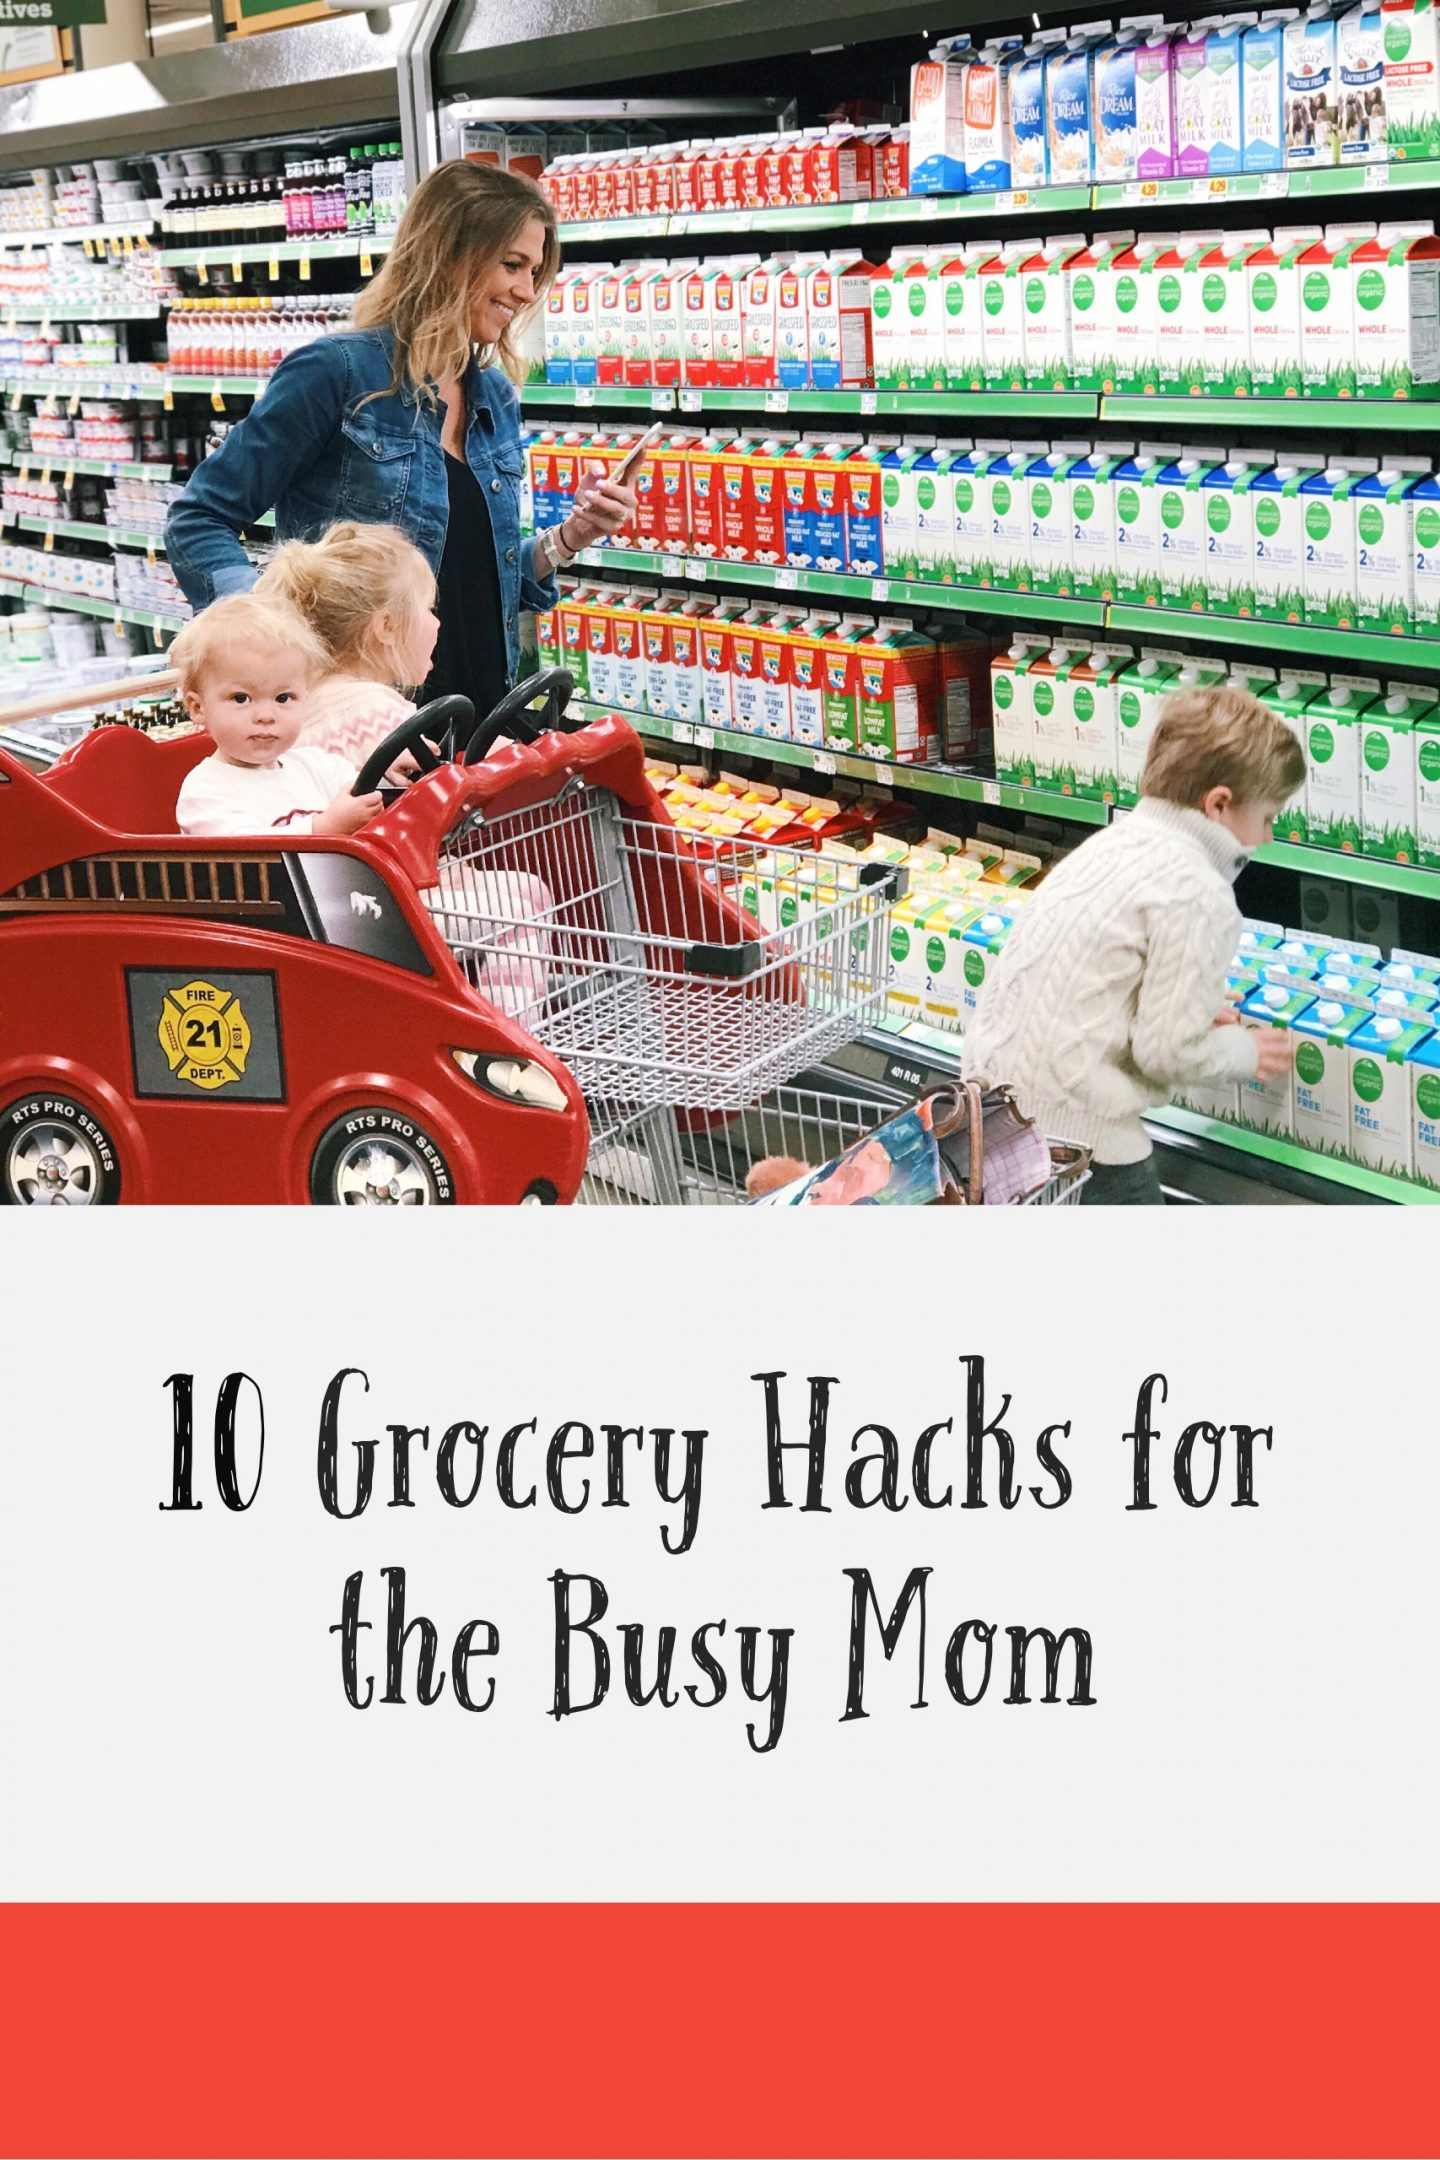 10 Grocery Hacks for the Busy Mom